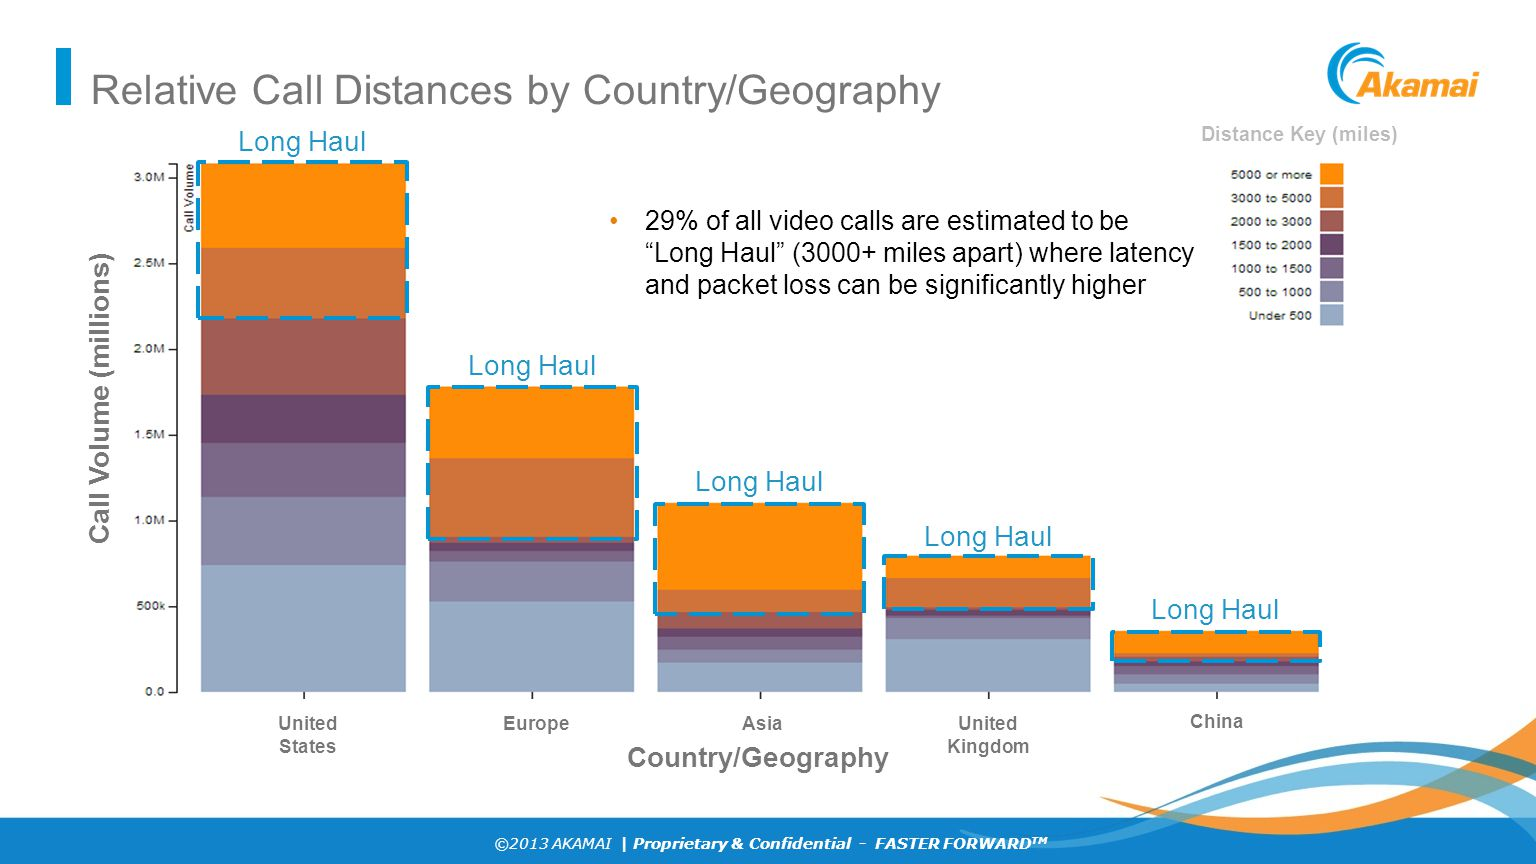 ©2013 AKAMAI | Proprietary & Confidential - FASTER FORWARD TM Relative Call Distances by Country/Geography United States Europe Asia United Kingdom Ch